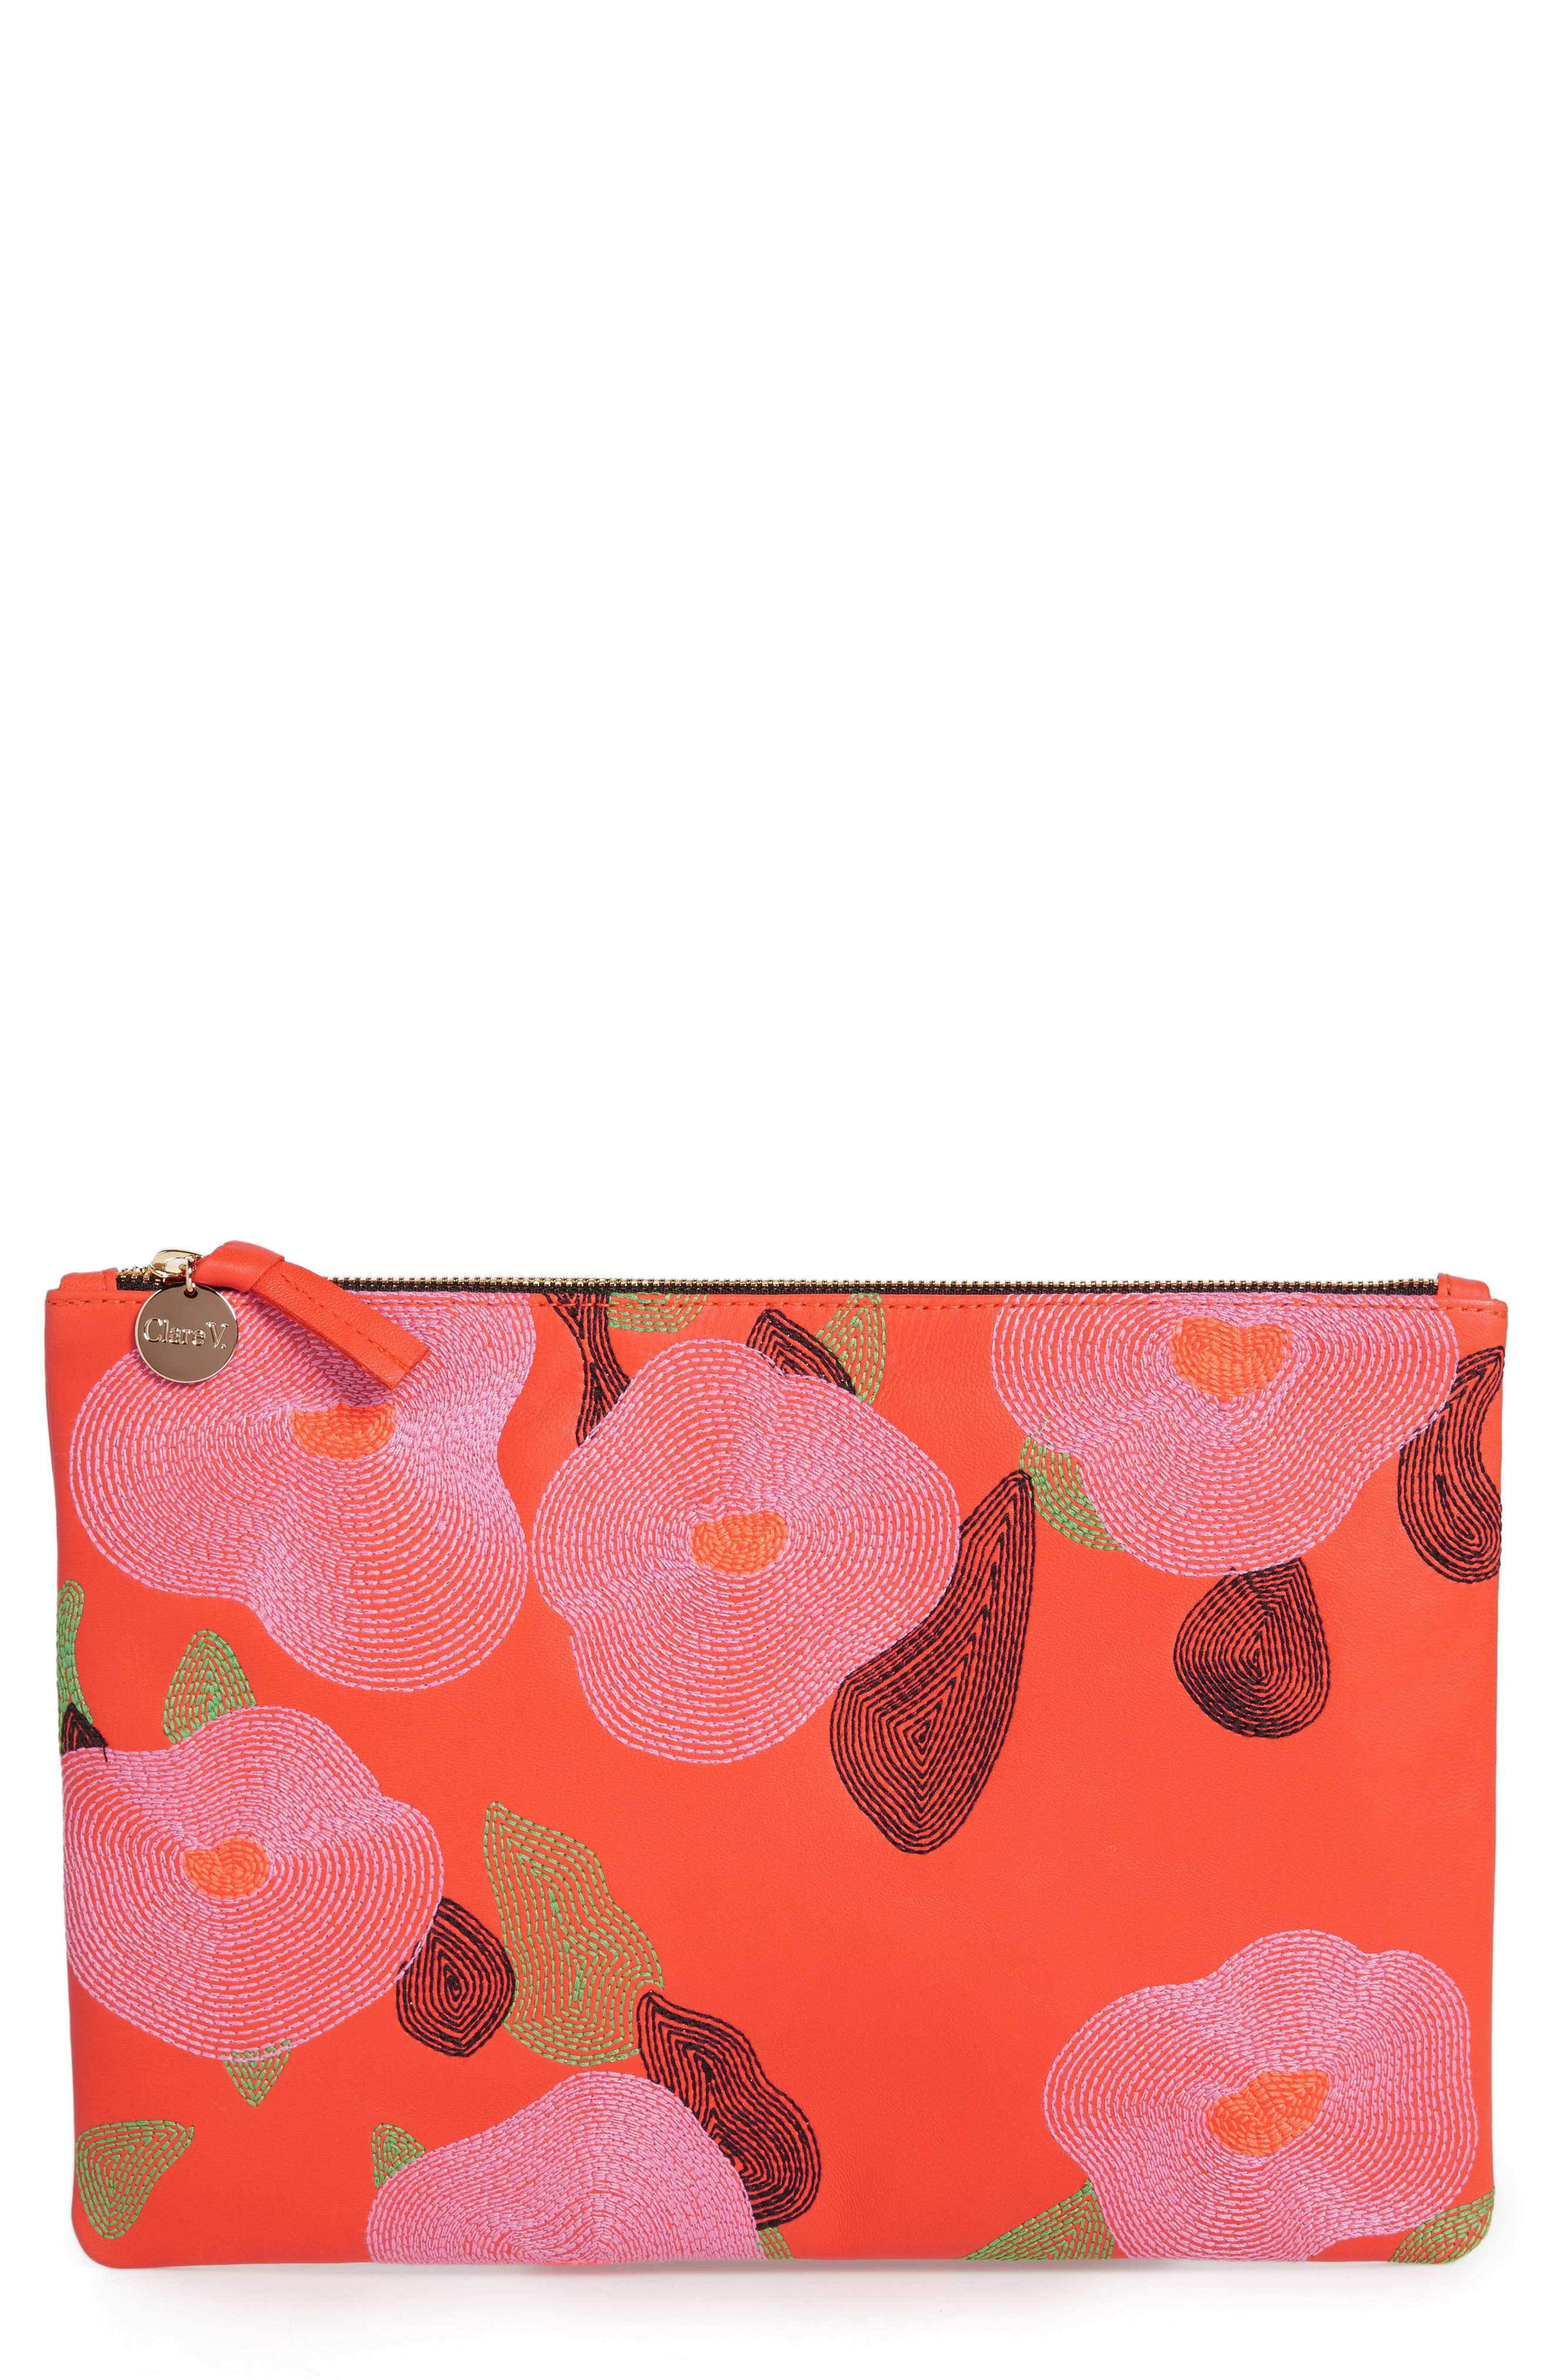 Embroidered Poppy Leather Flat Clutch,                             Main thumbnail 1, color,